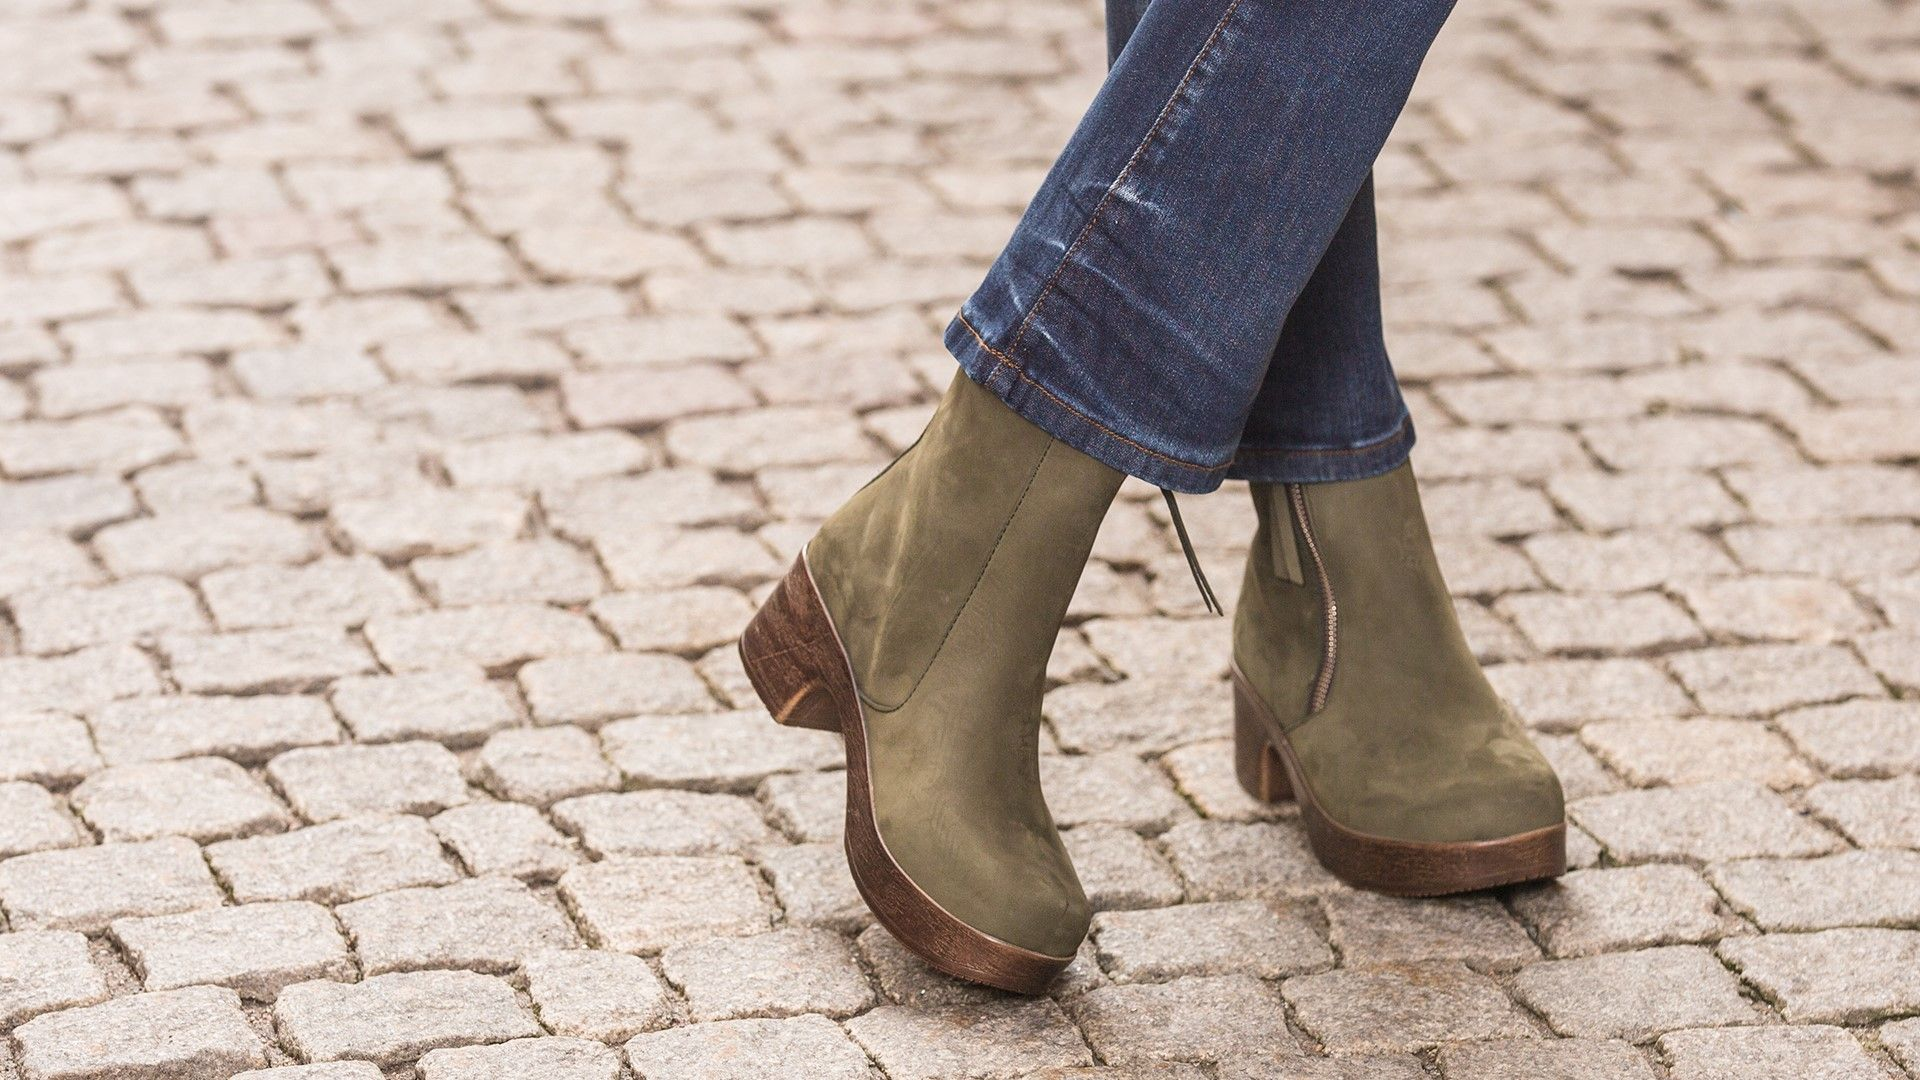 Moa boot with removable footbed and soft sole | Boots, Clog